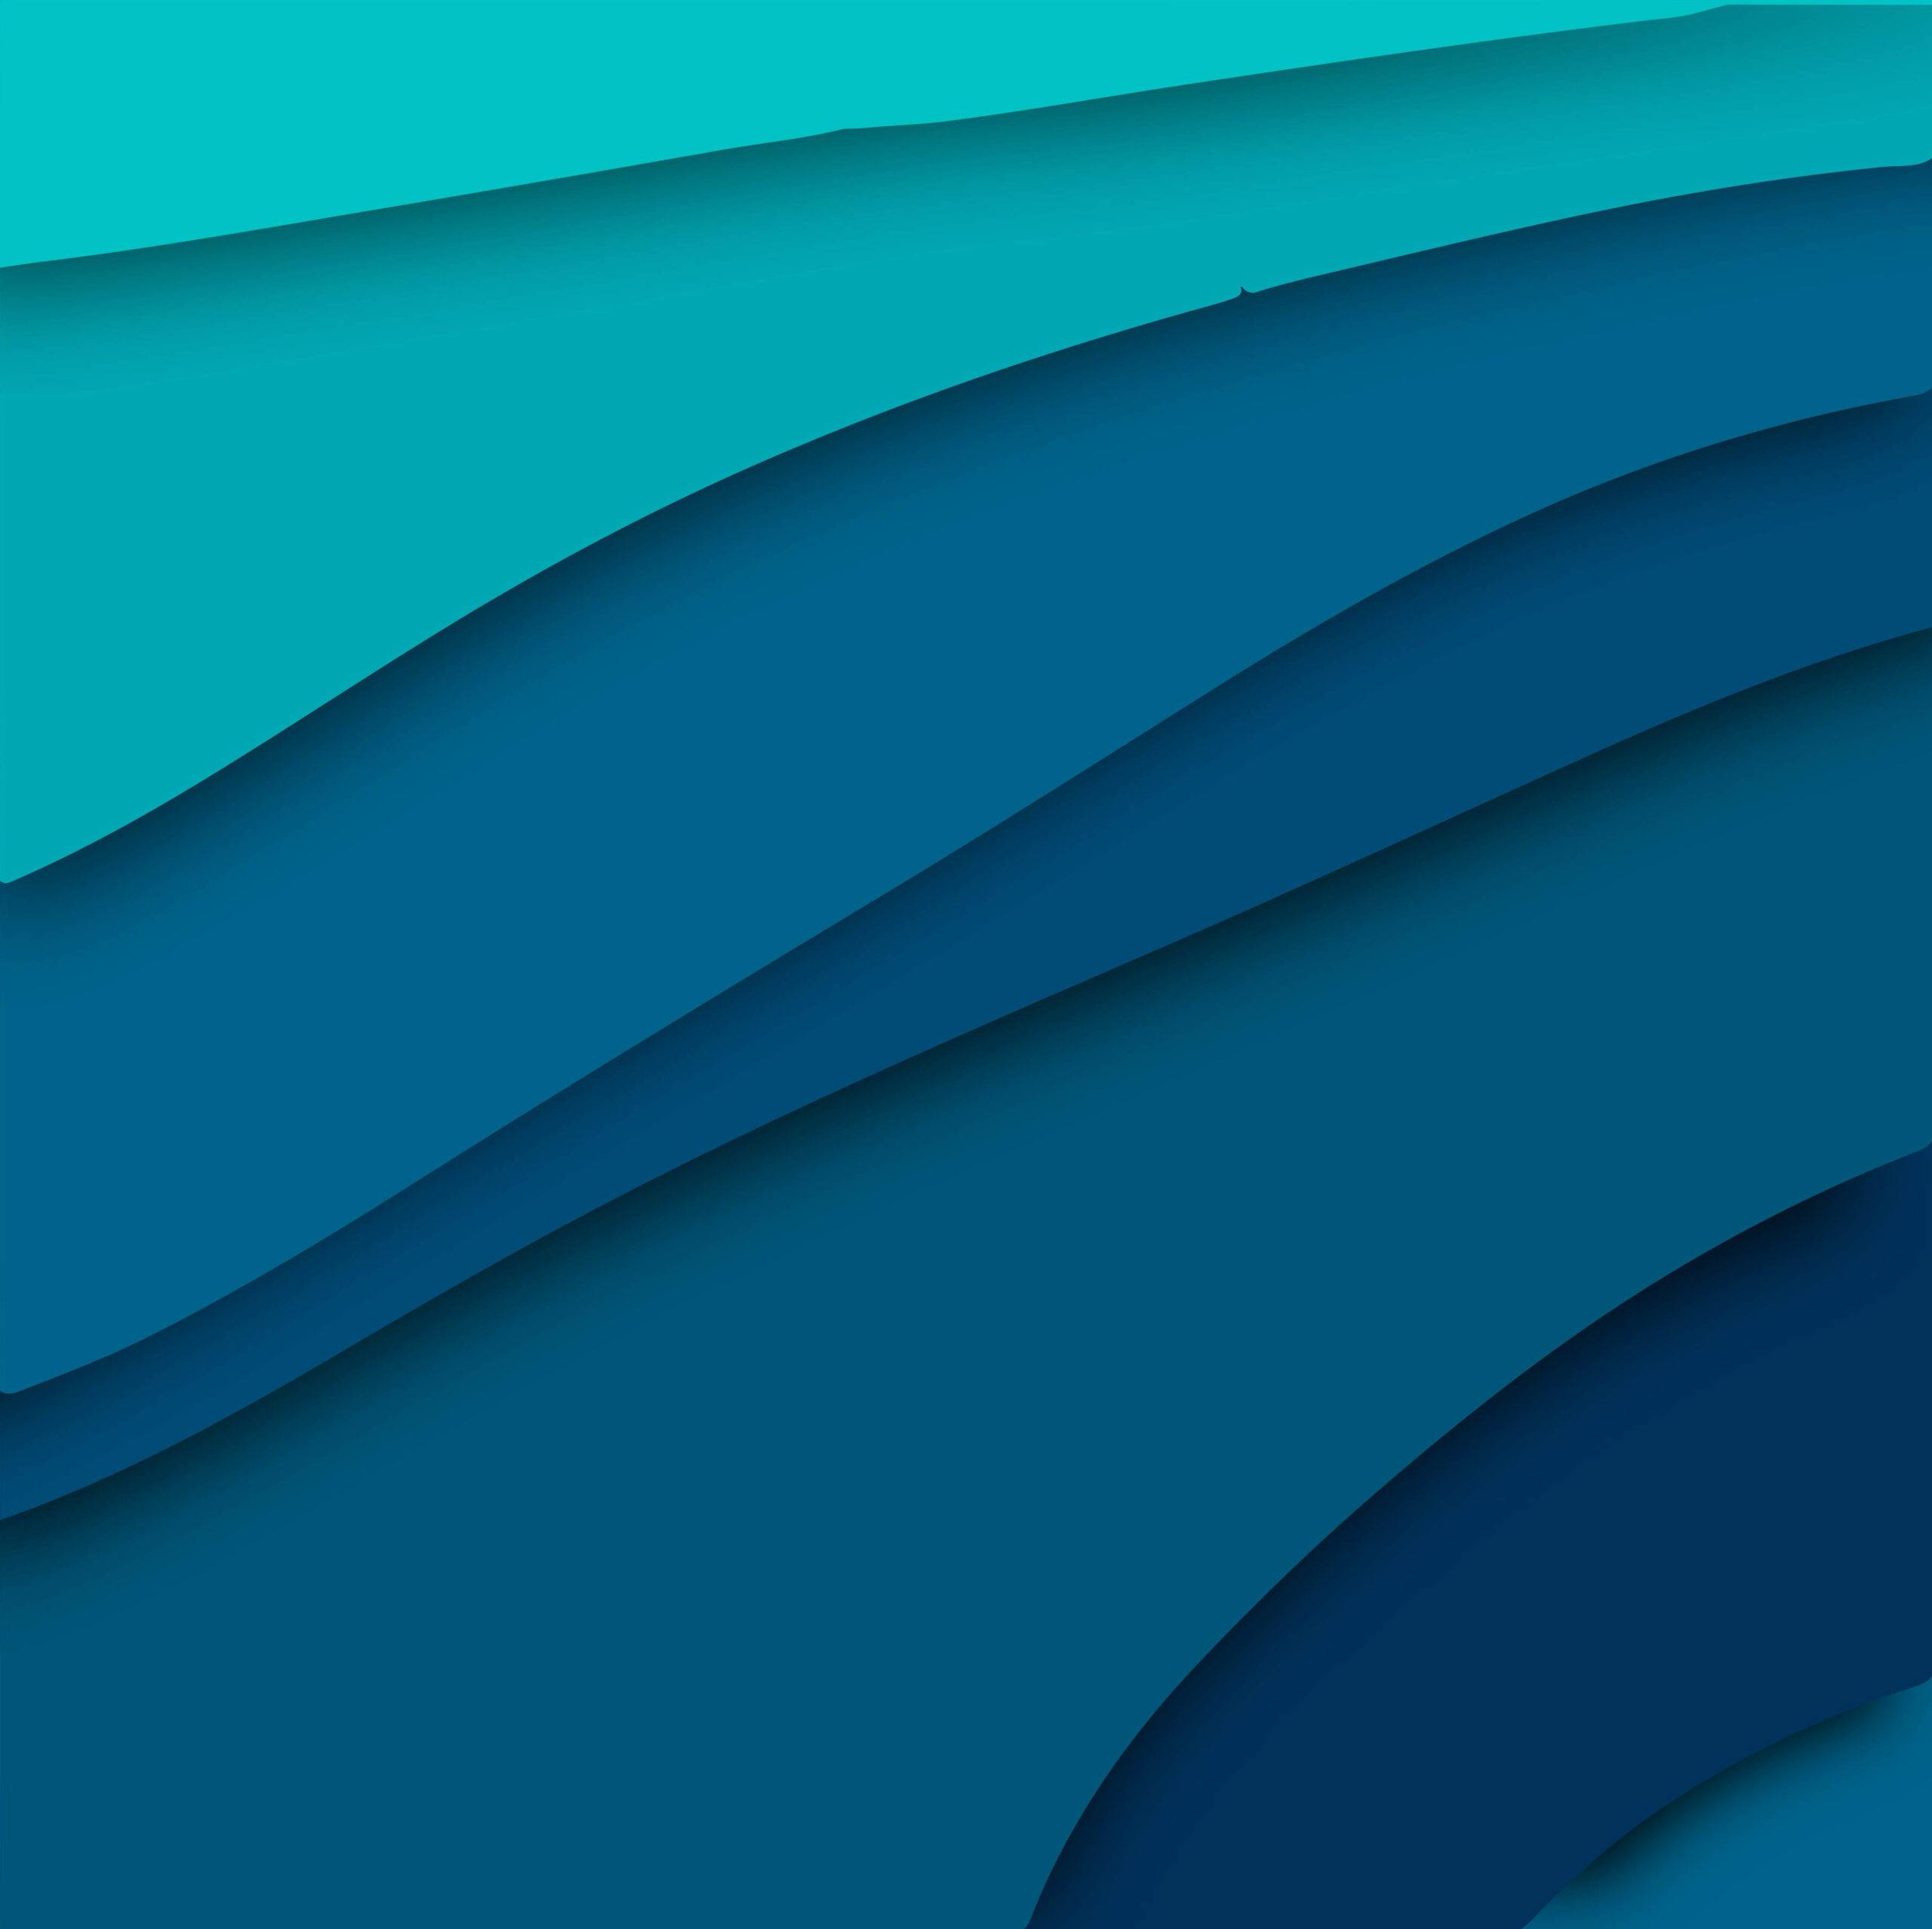 Abstract blue papercut stylish background vector